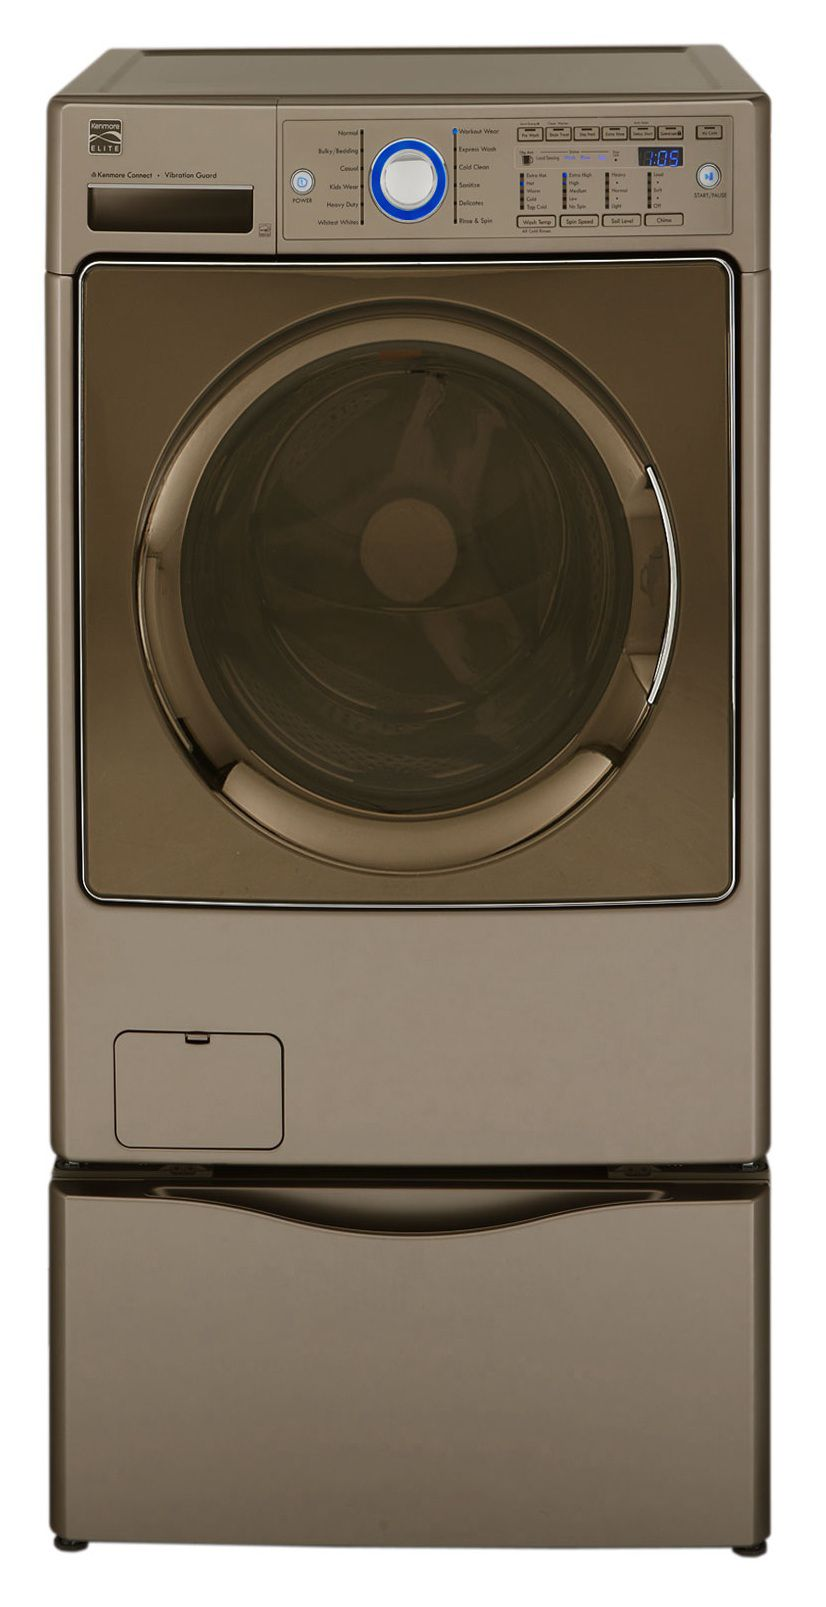 Kenmore Elite 4.3 cu. ft. Front-Load HE Washer - Ginger